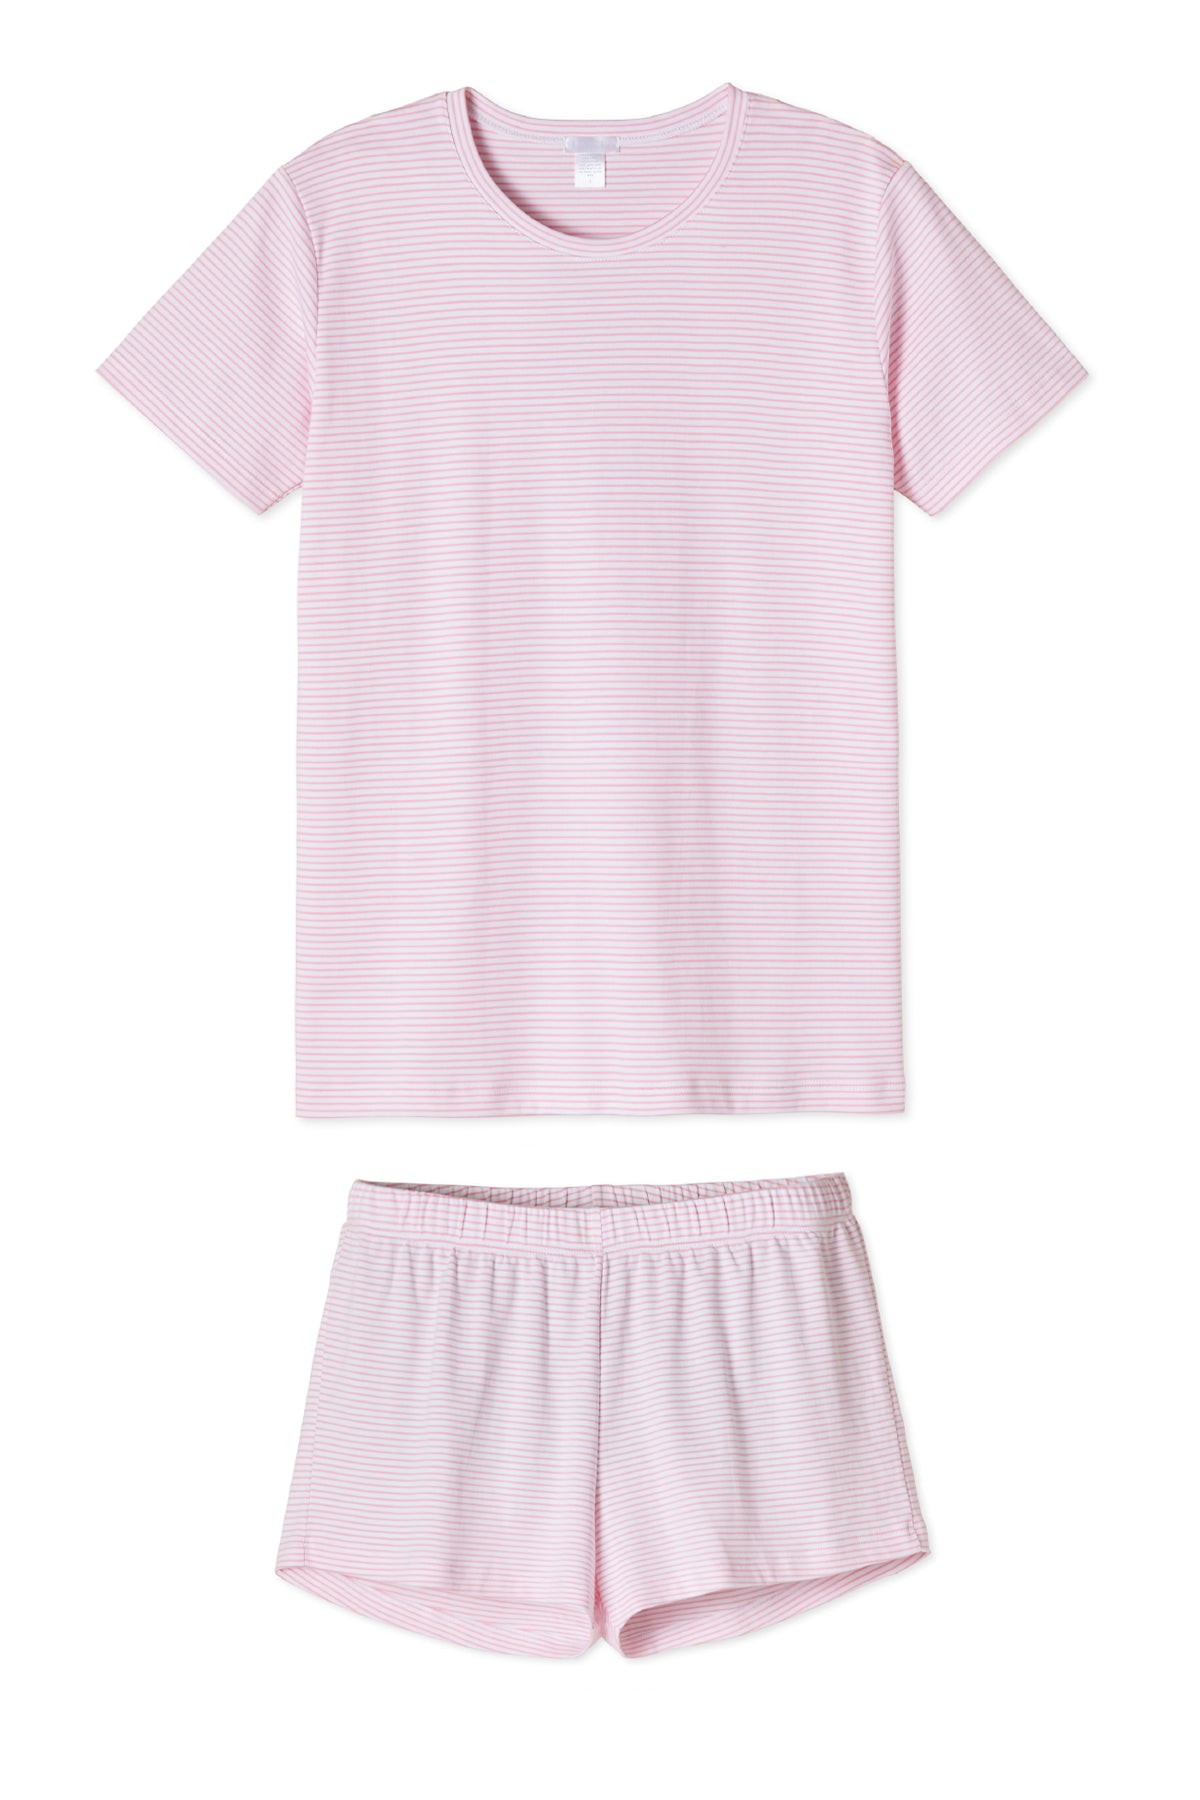 Pima Weekend Shorts Set in Lily